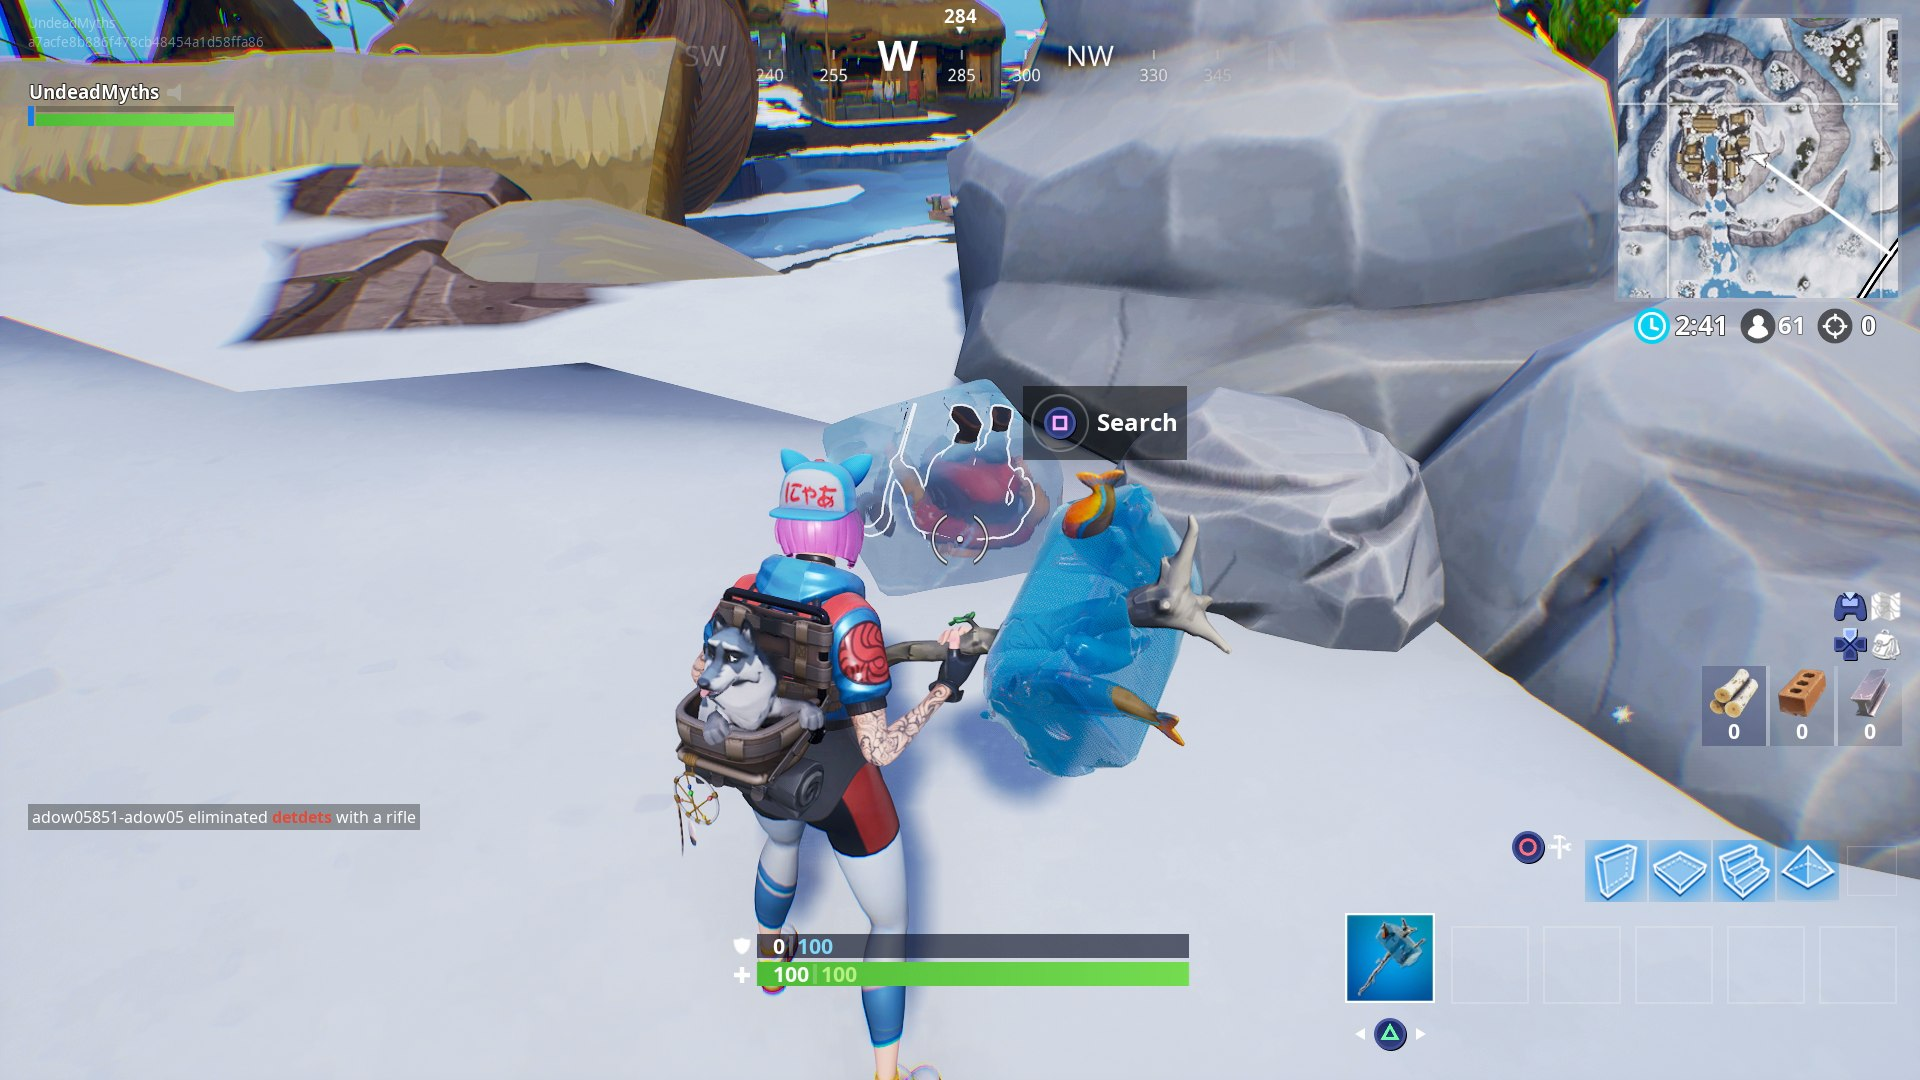 Fortnite Chilly Gnome Locations Where To Search Chilly Gnomes In Fortnite Battle Royale USgamer